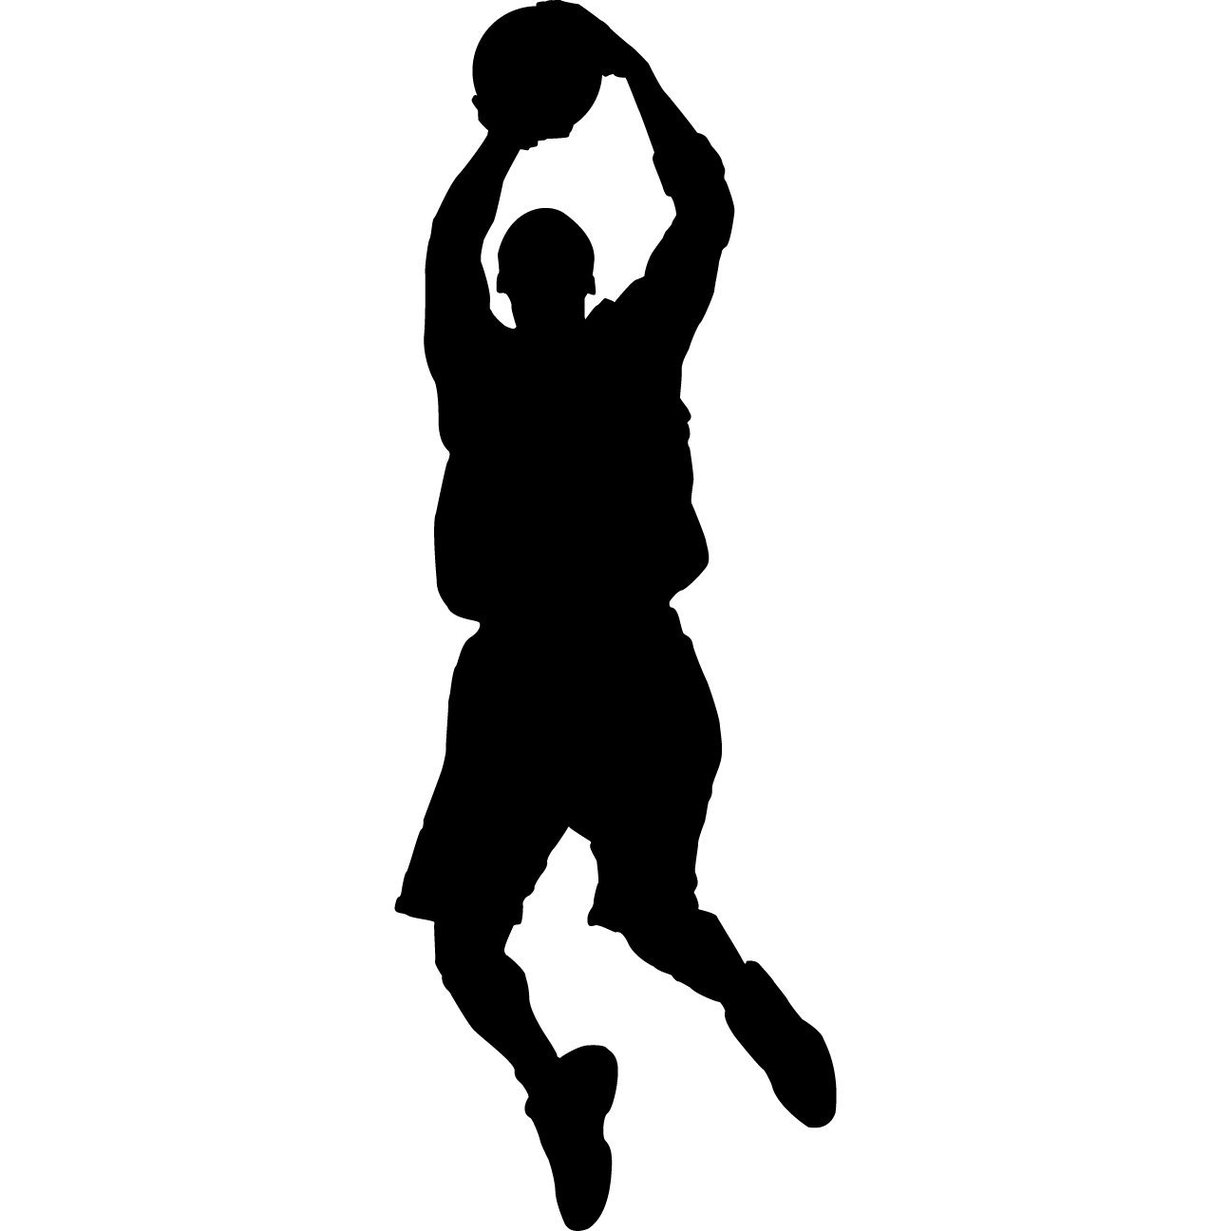 Free Silhouette Basketball Cliparts, Download Free Clip Art, Free.